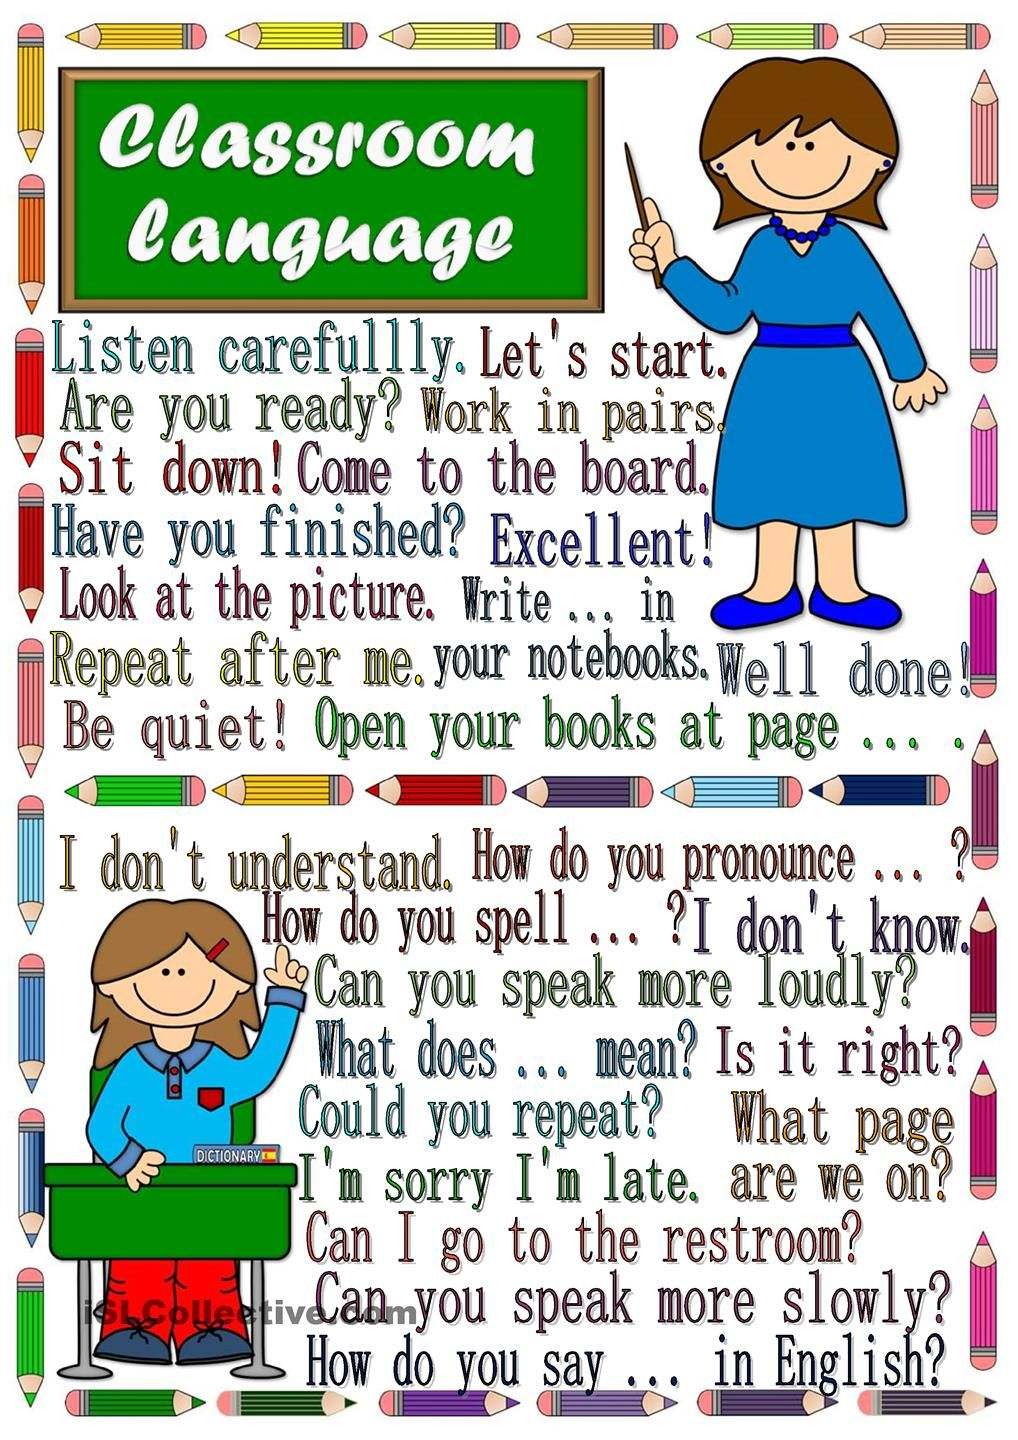 Classroom Ideas Esl : Classroom language poster and rules